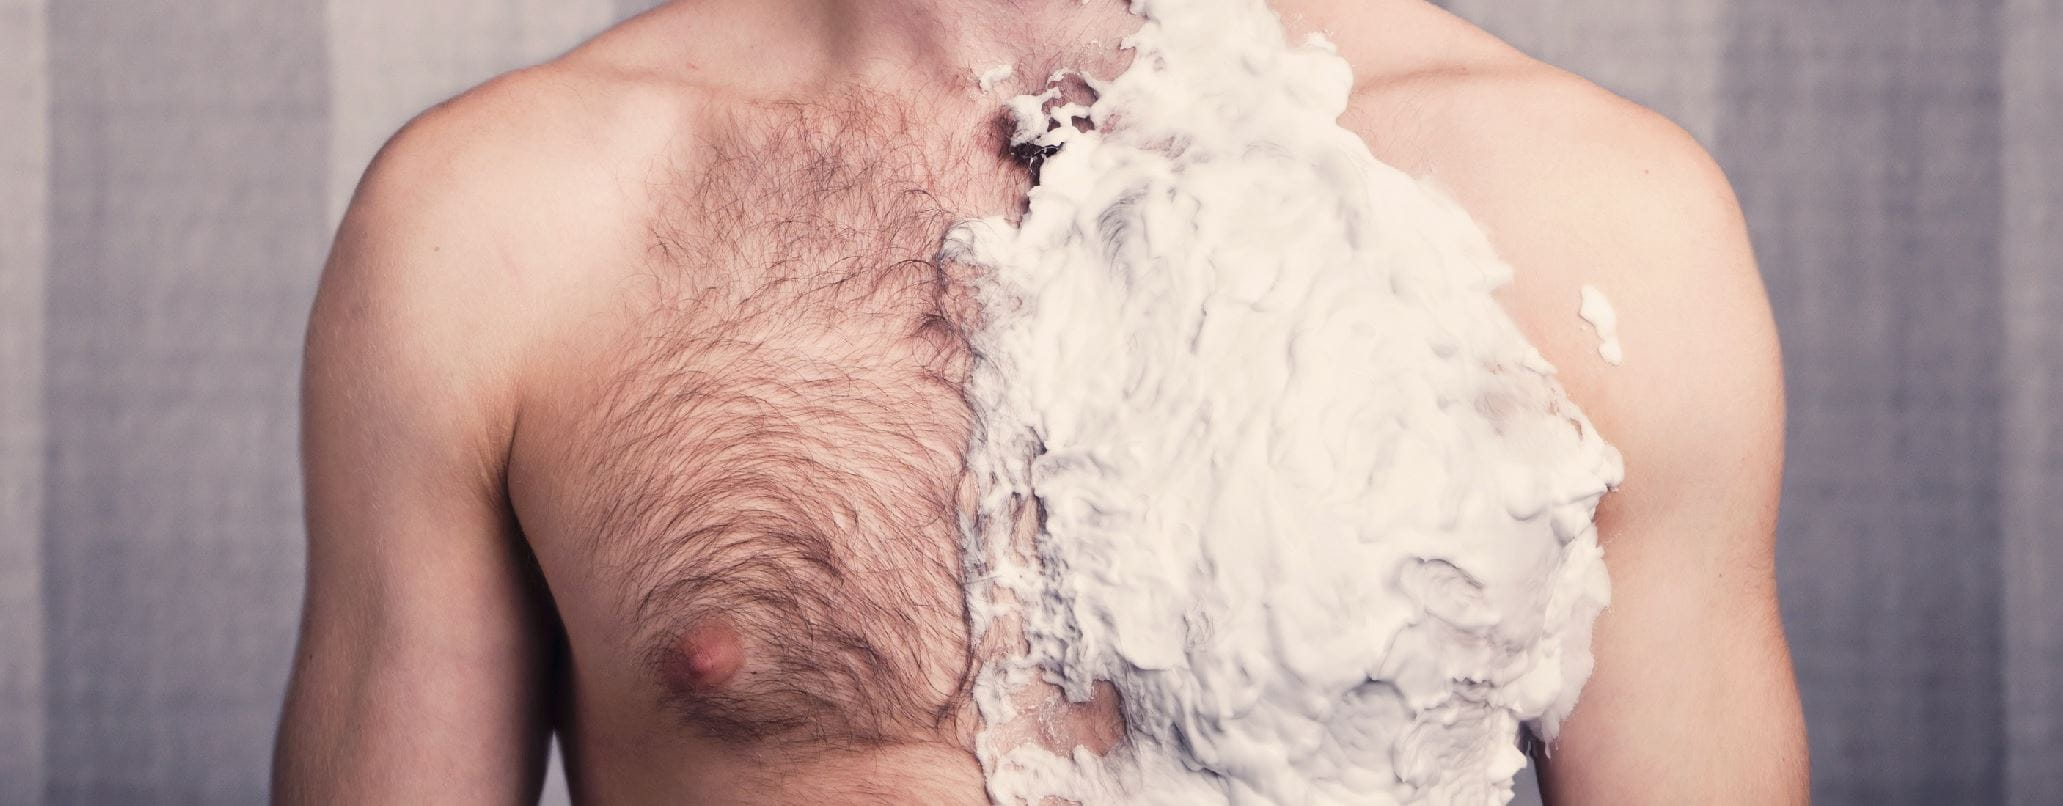 Body Hair To Shave Or Not To Shave Male Grooming Nivea